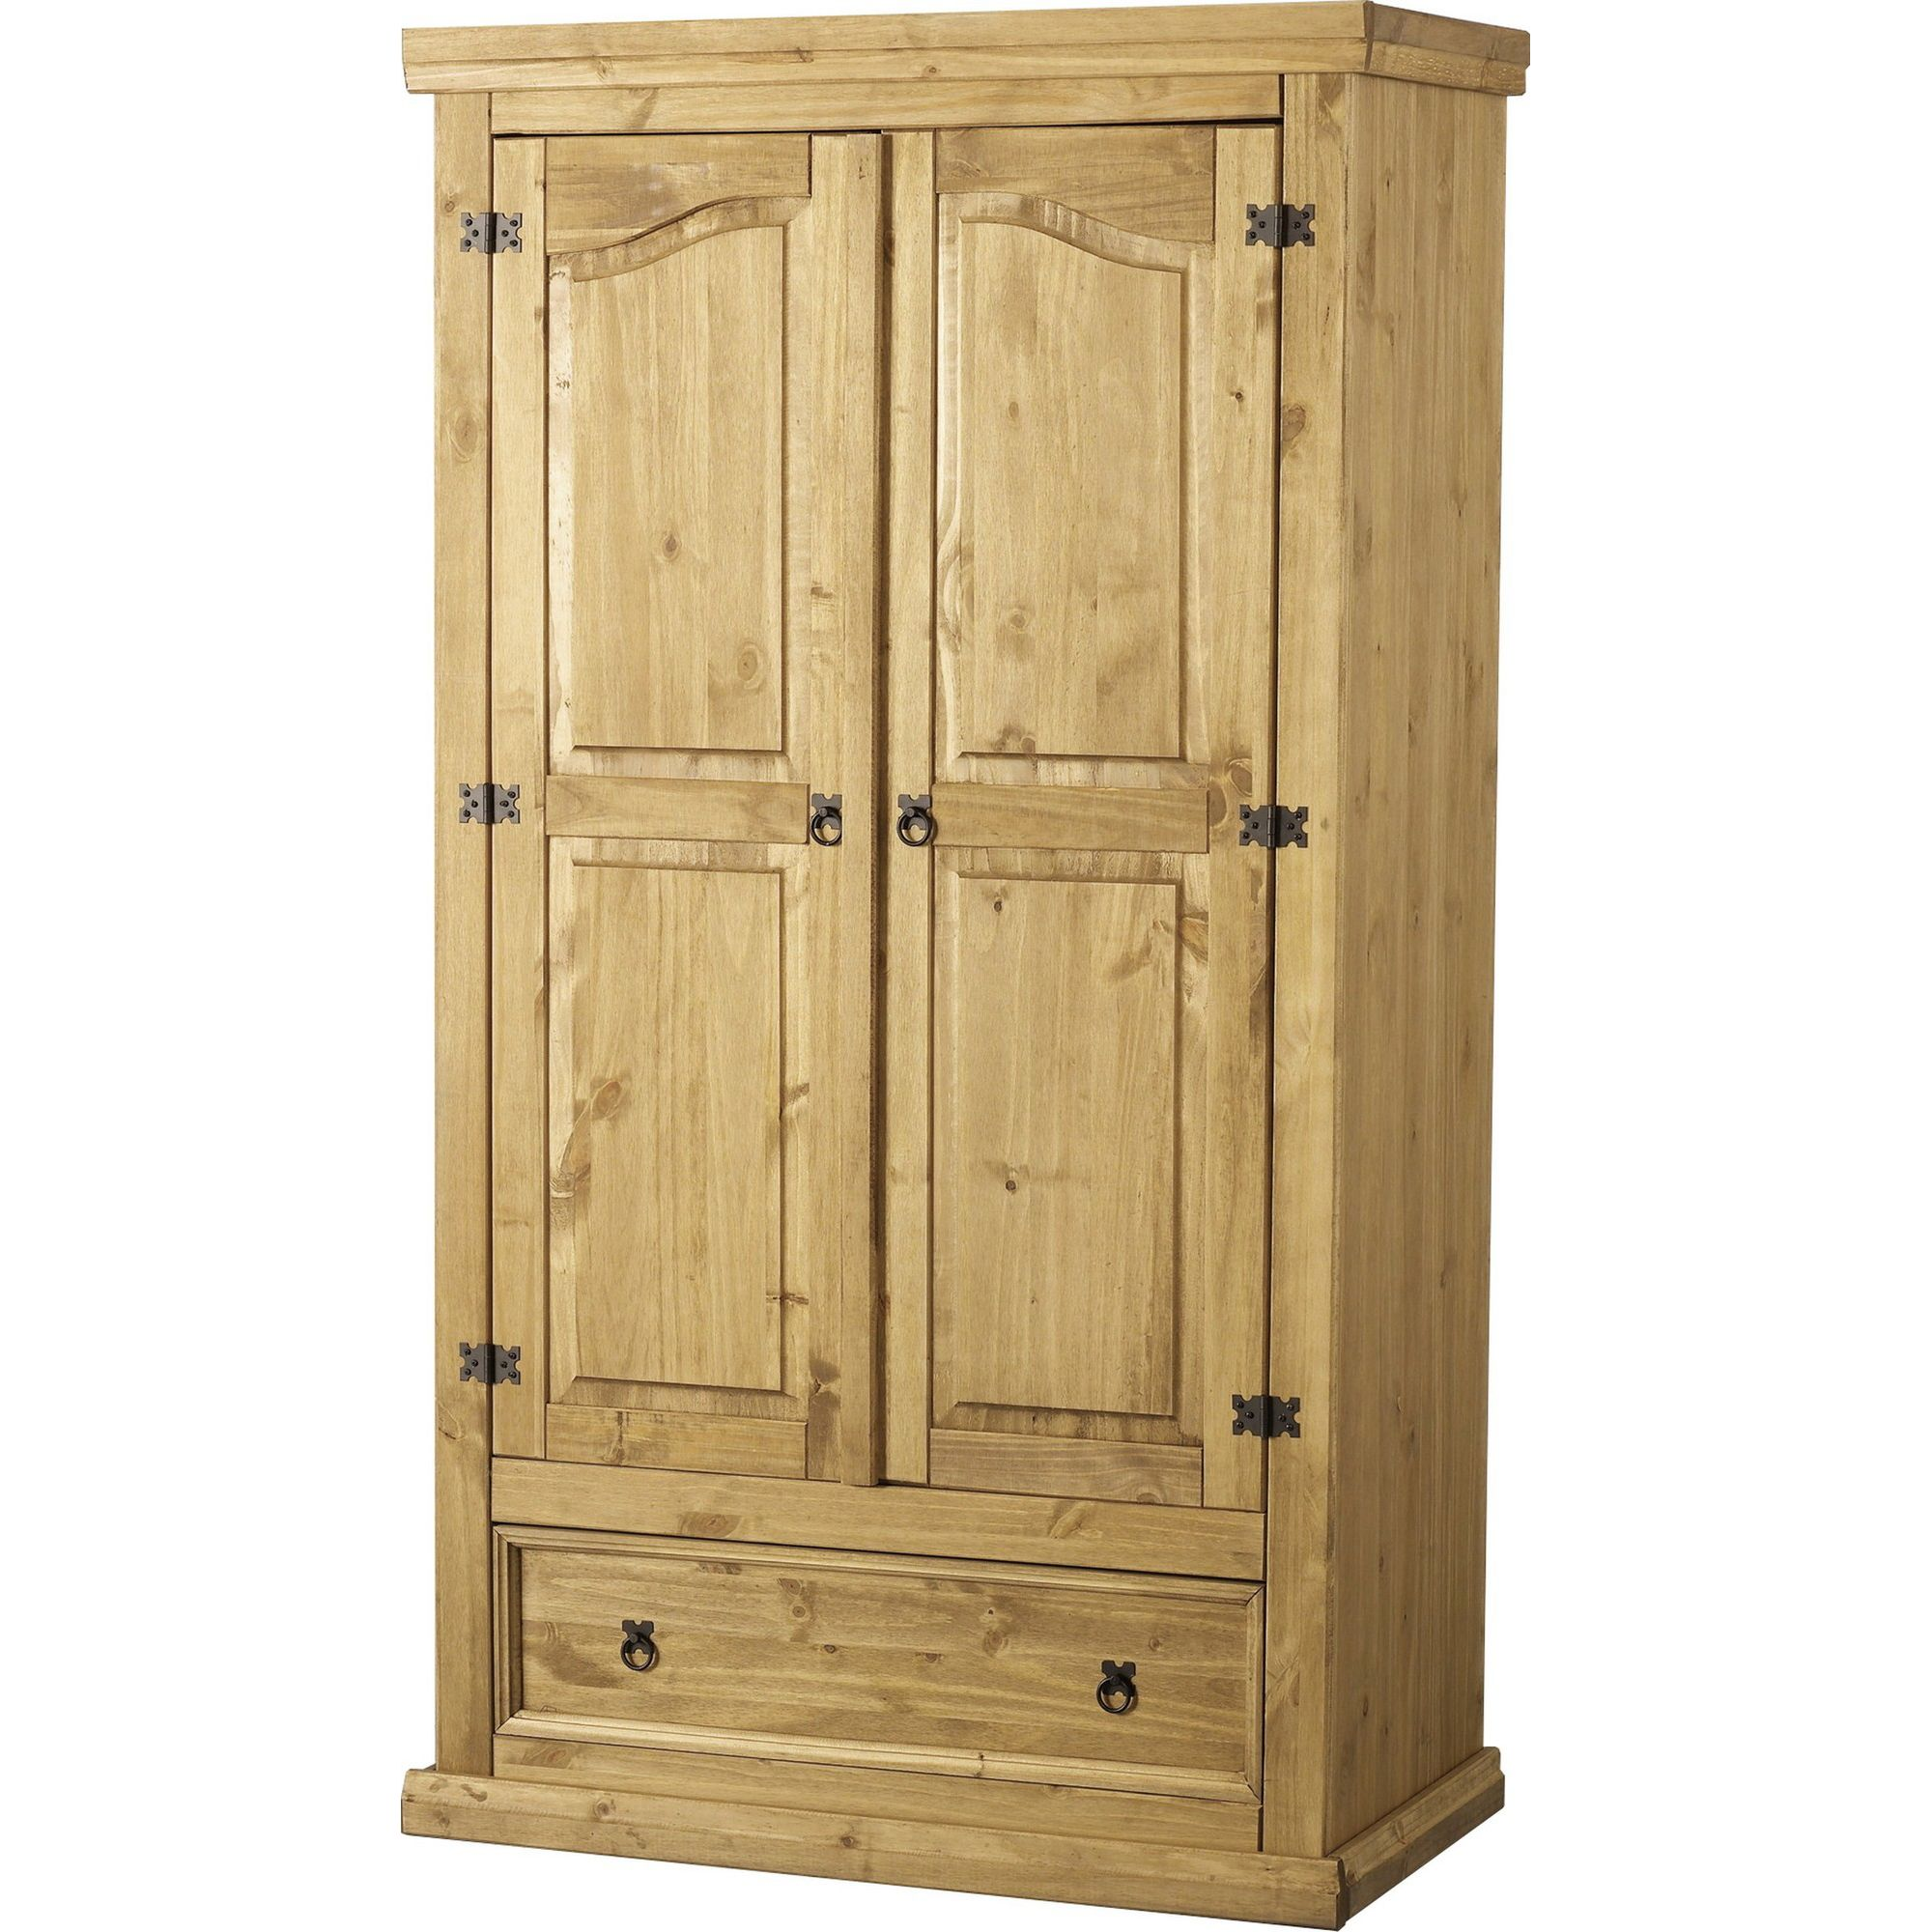 Home Essence Corona Two Door Wardrobe in Distressed Waxed Pine at Tesco Direct